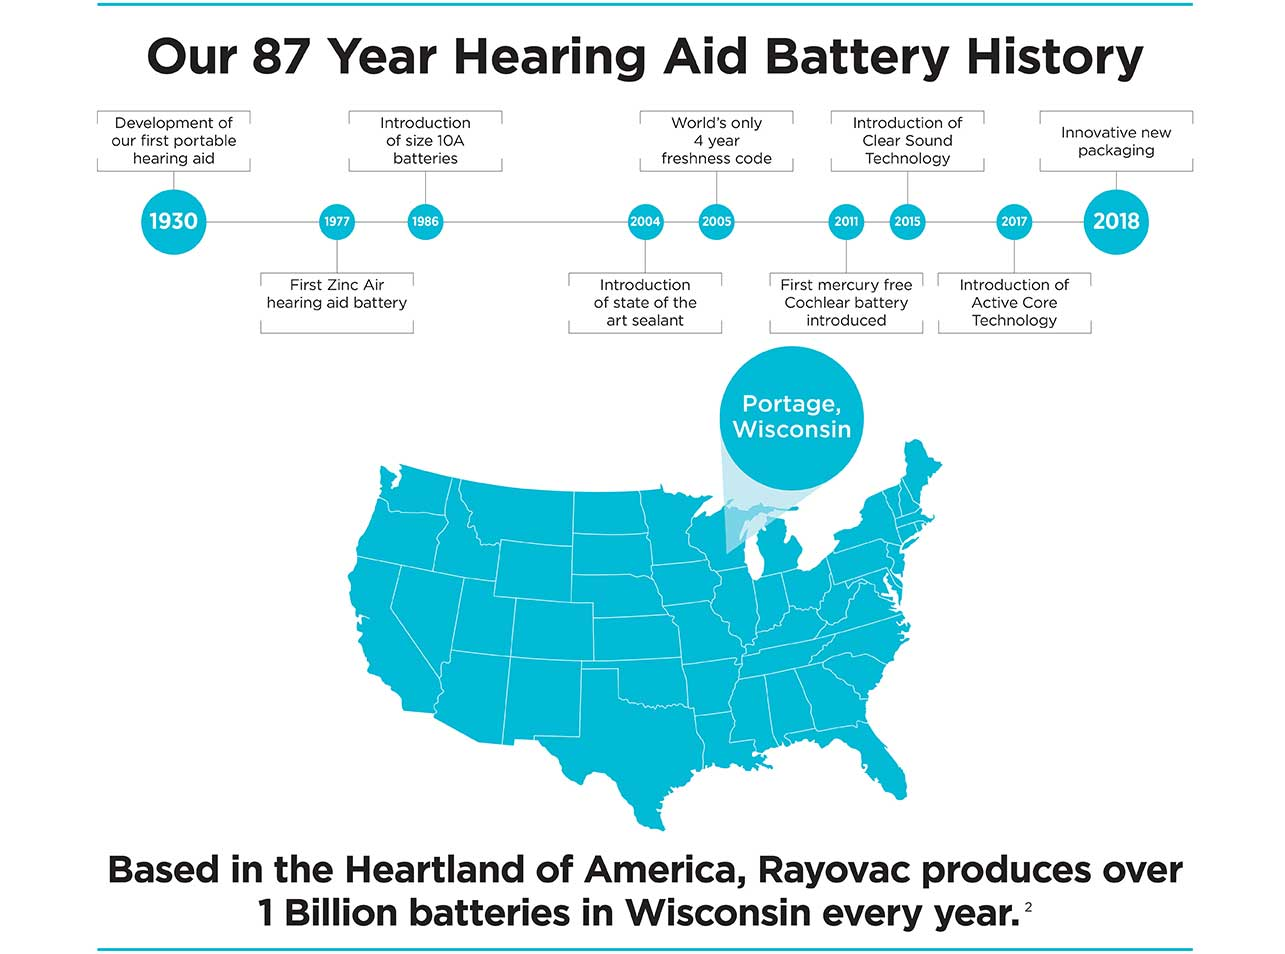 Our 87 Year Hearing Aid Battery History. Based in the Heartland of America, Rayovac produces over 1 Billion batteries in Wisconsin every year.